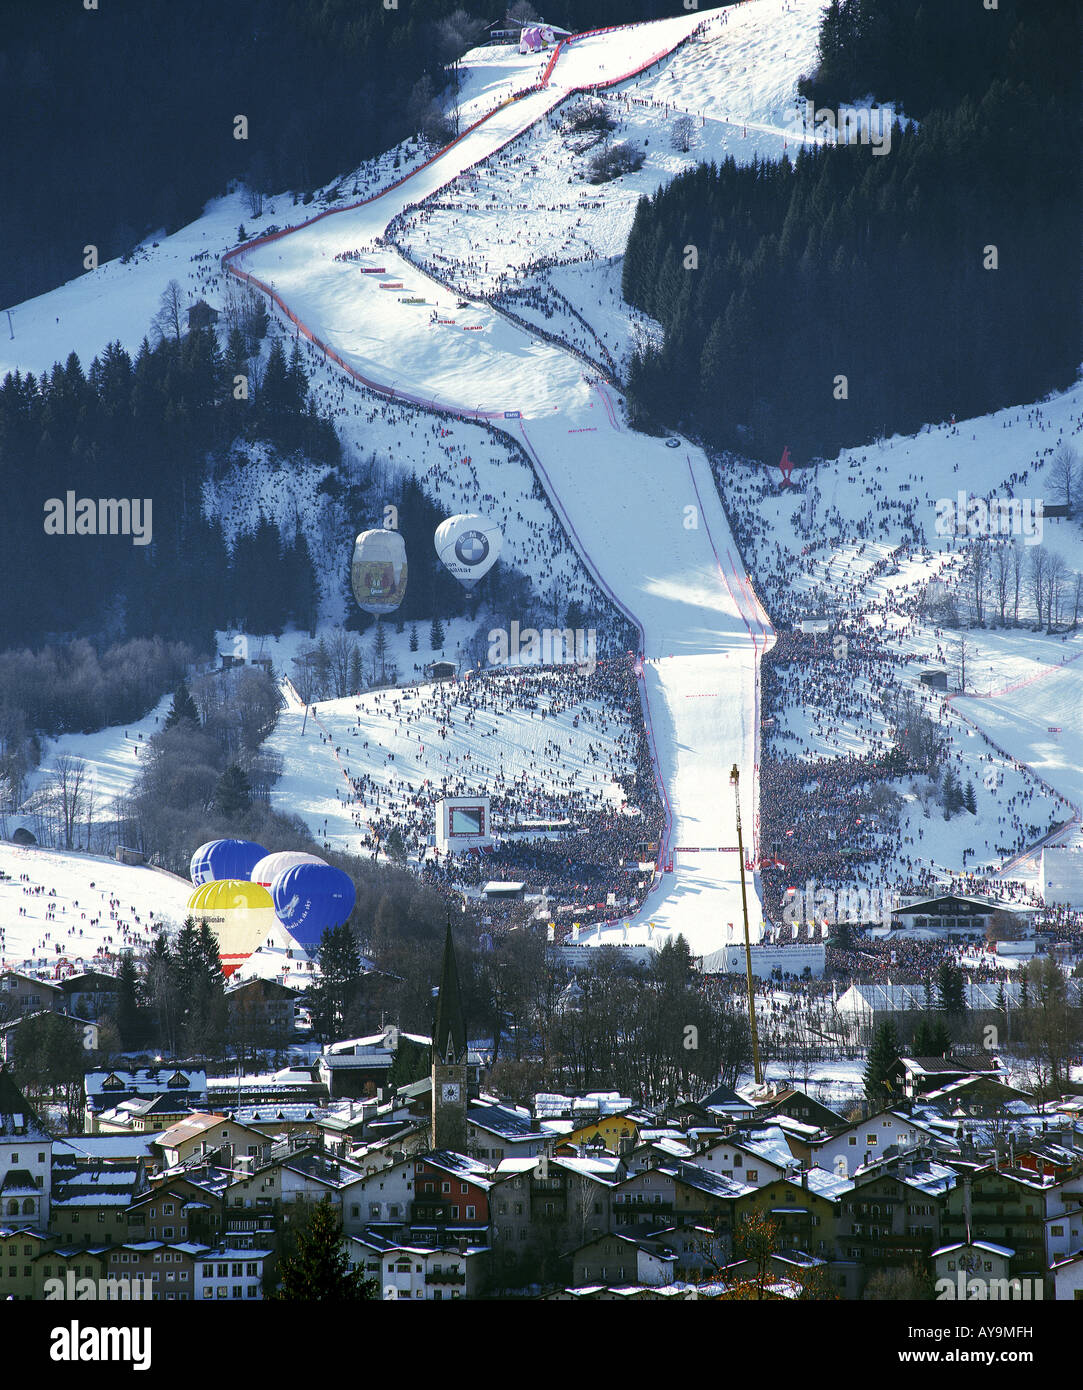 DOWNHILL SKIING COMPETITION IN KITZBUEHEL, AUSTRIA - Stock Image